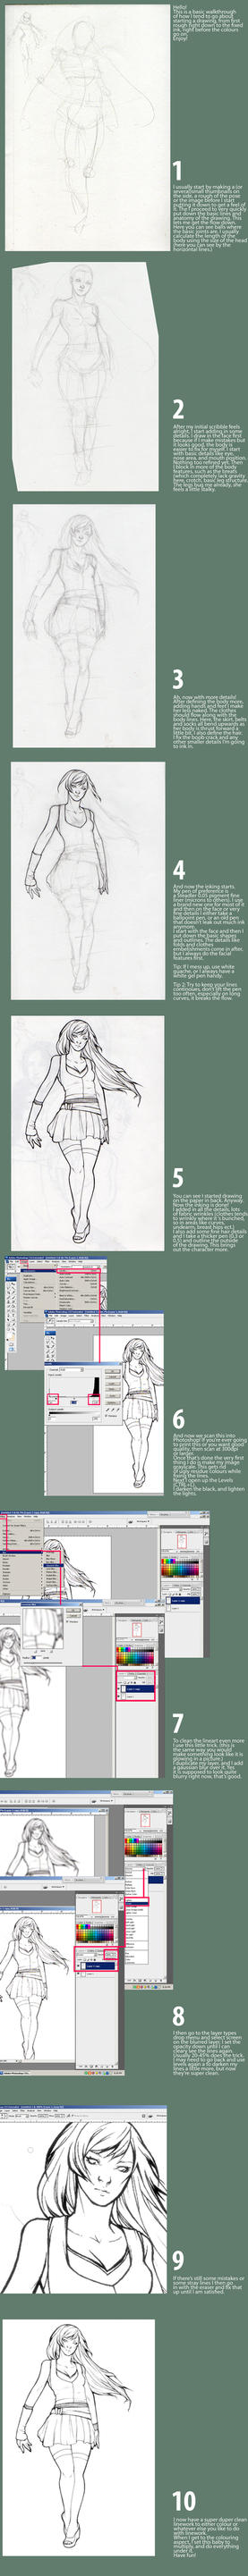 Sketch and Ink tutorial by psycho-kitty